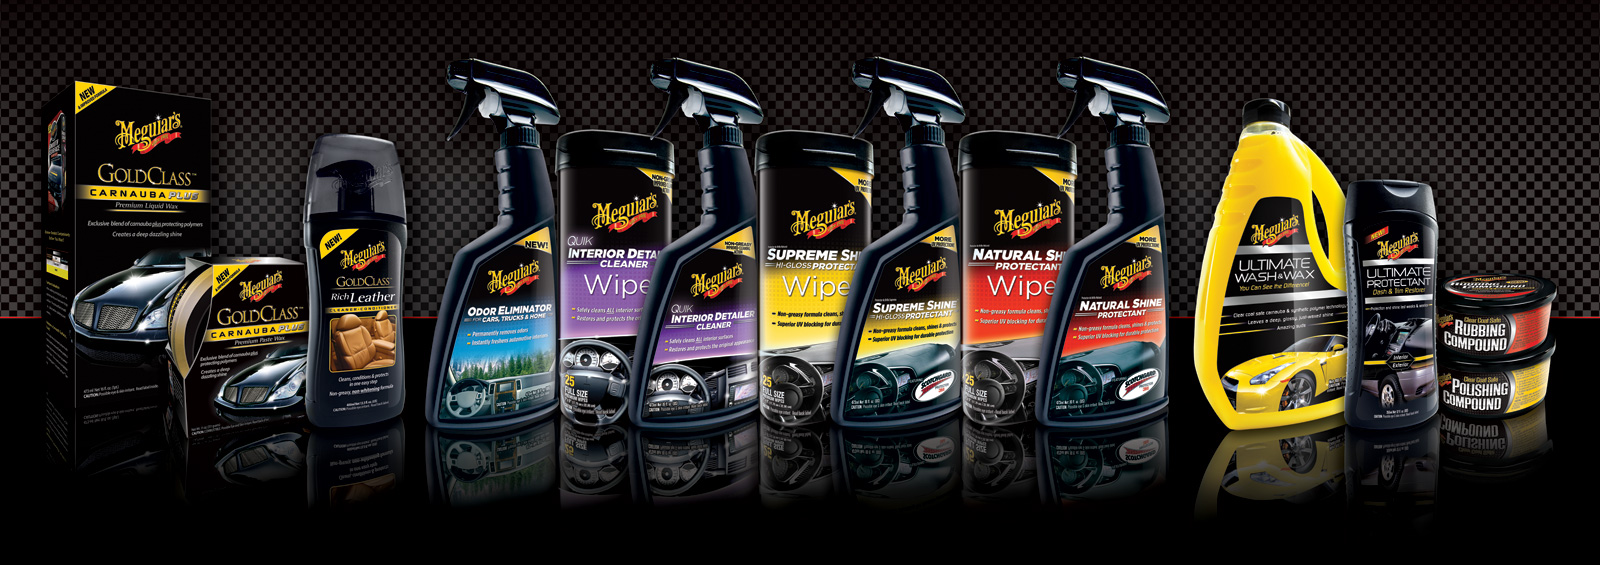 slide /fotky72785/slider/2010-meguiars-new-products.jpg